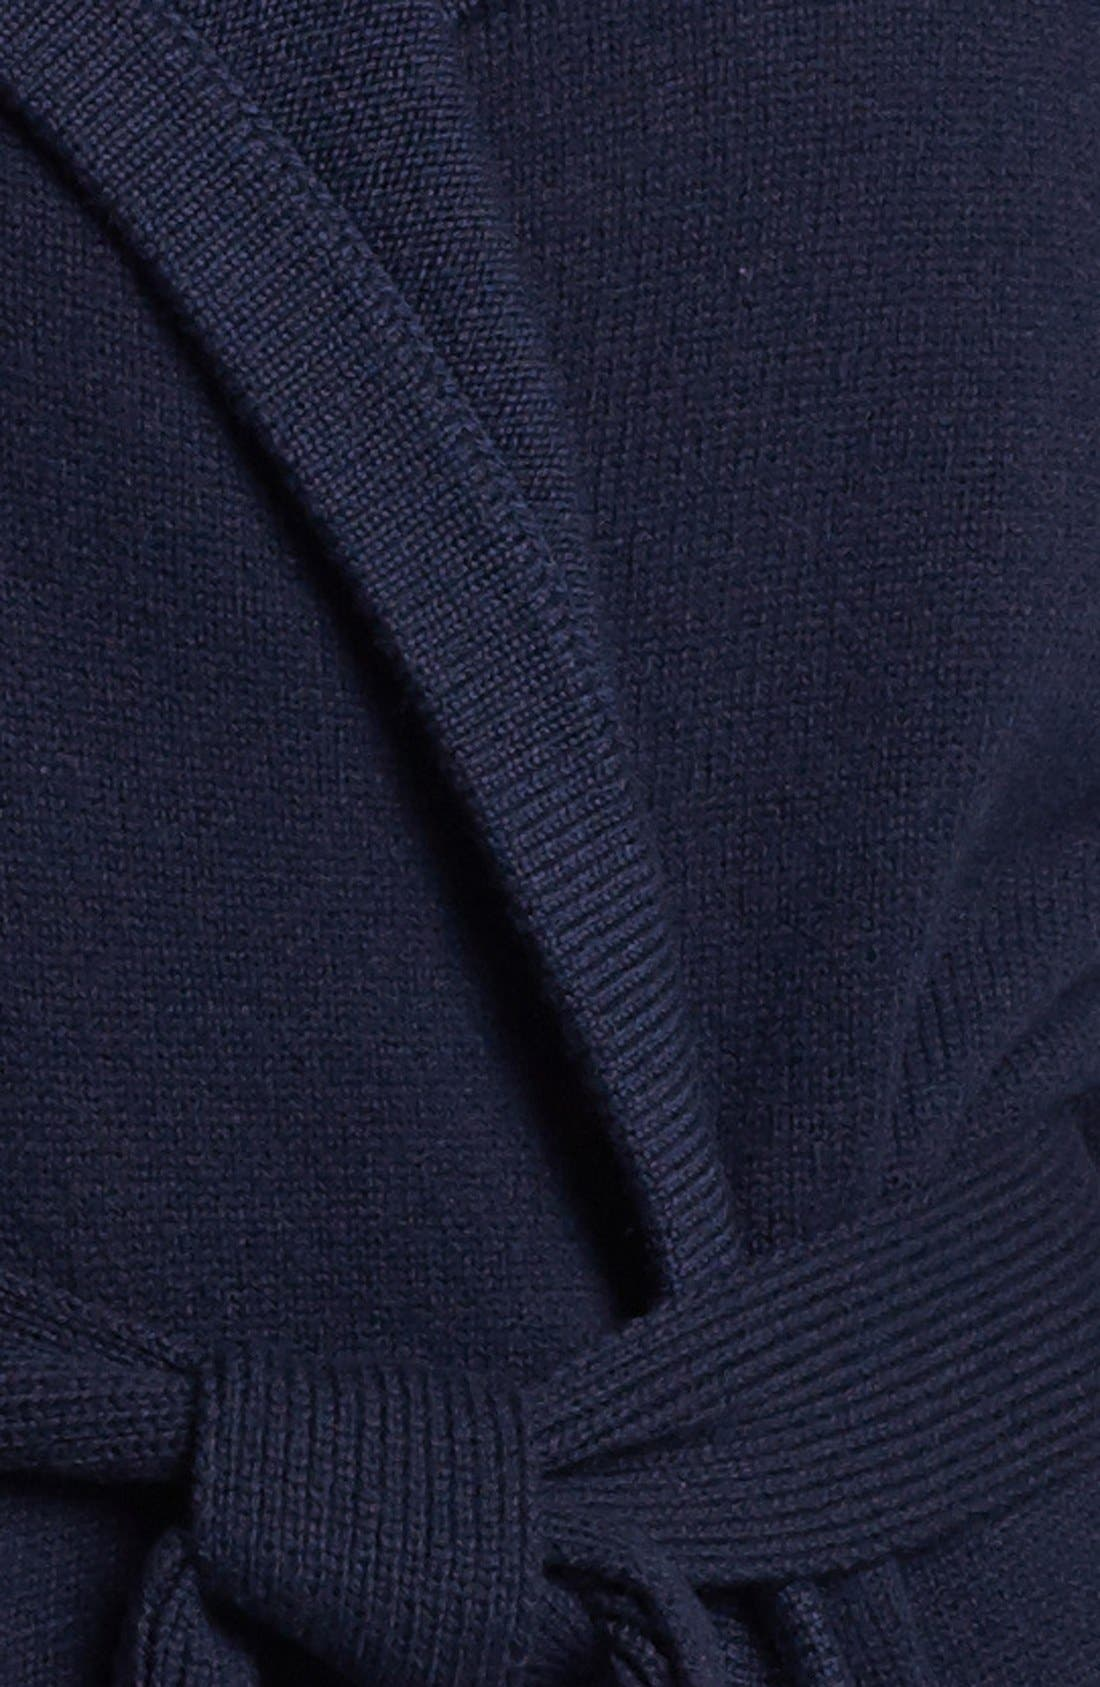 'Archie' Belted Wool Sweater,                             Alternate thumbnail 2, color,                             438